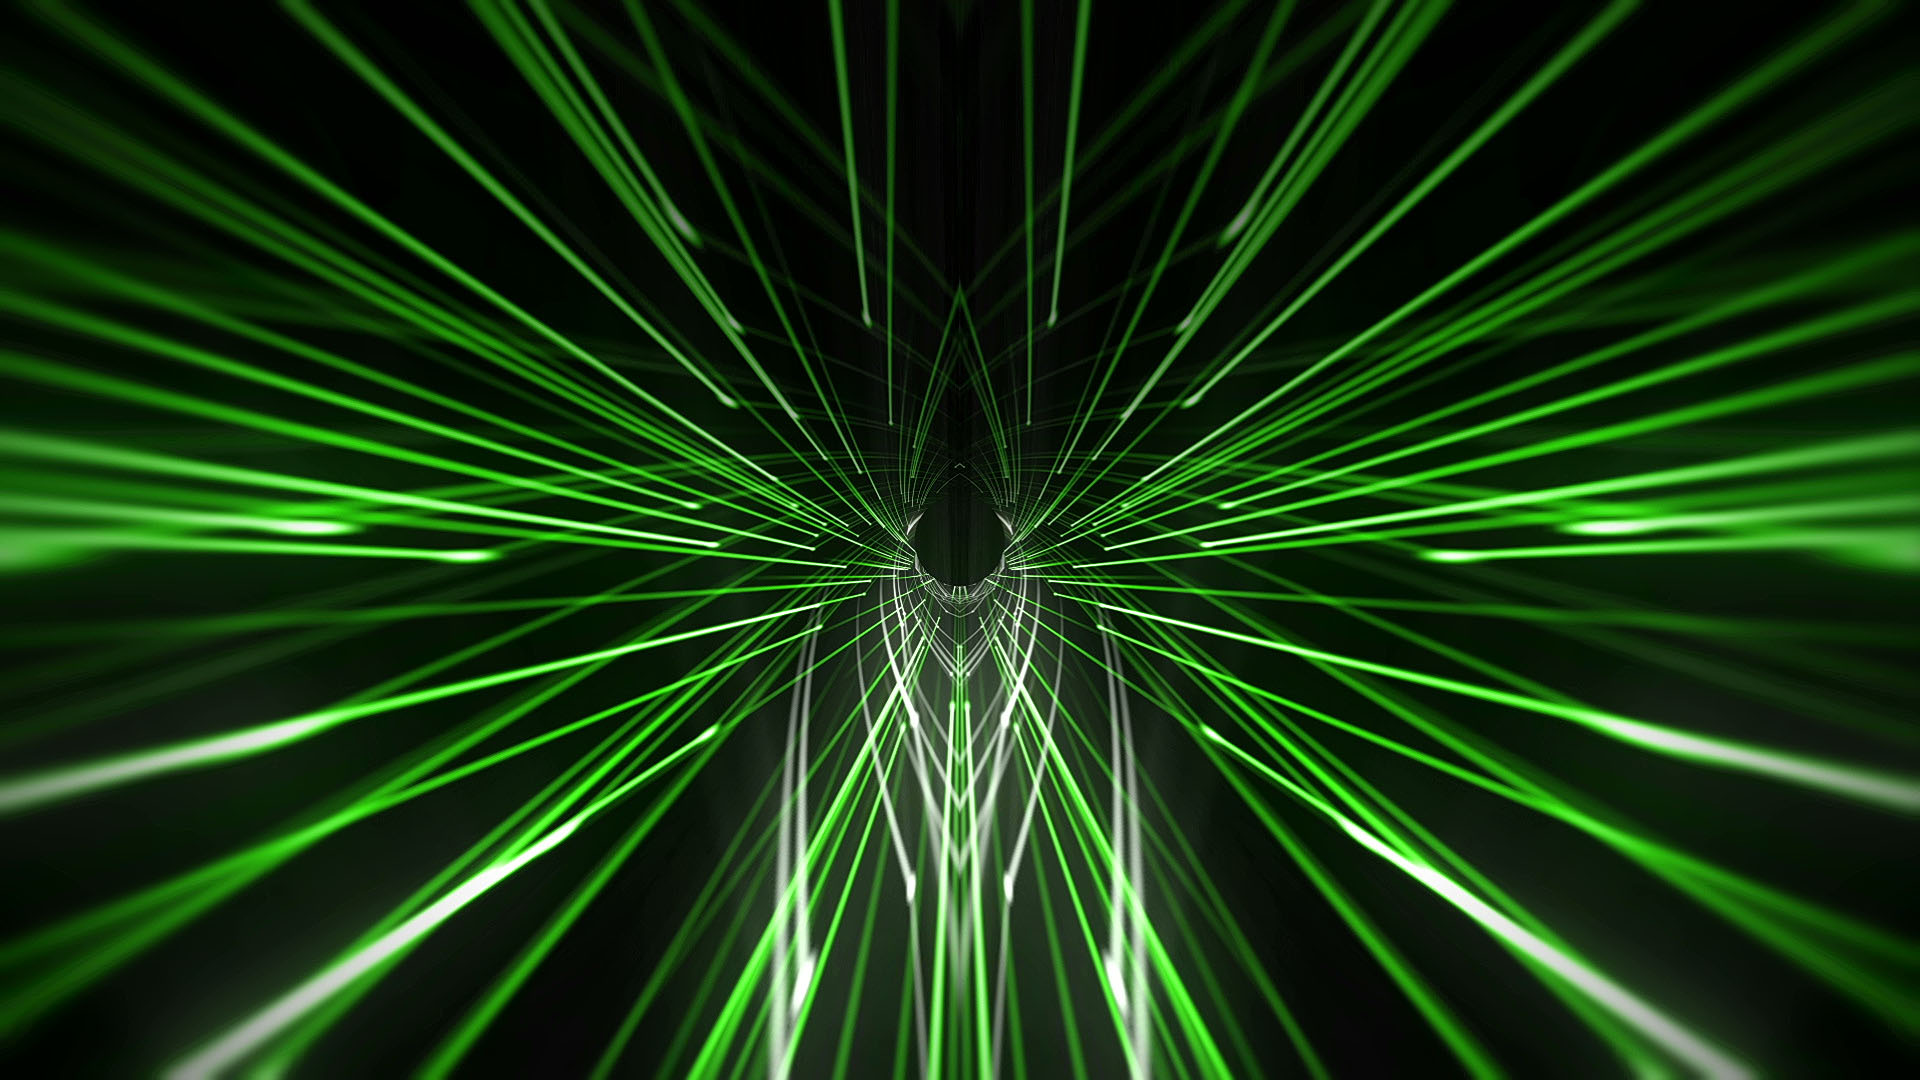 motion_tunnel_vj_loops_Layer_18